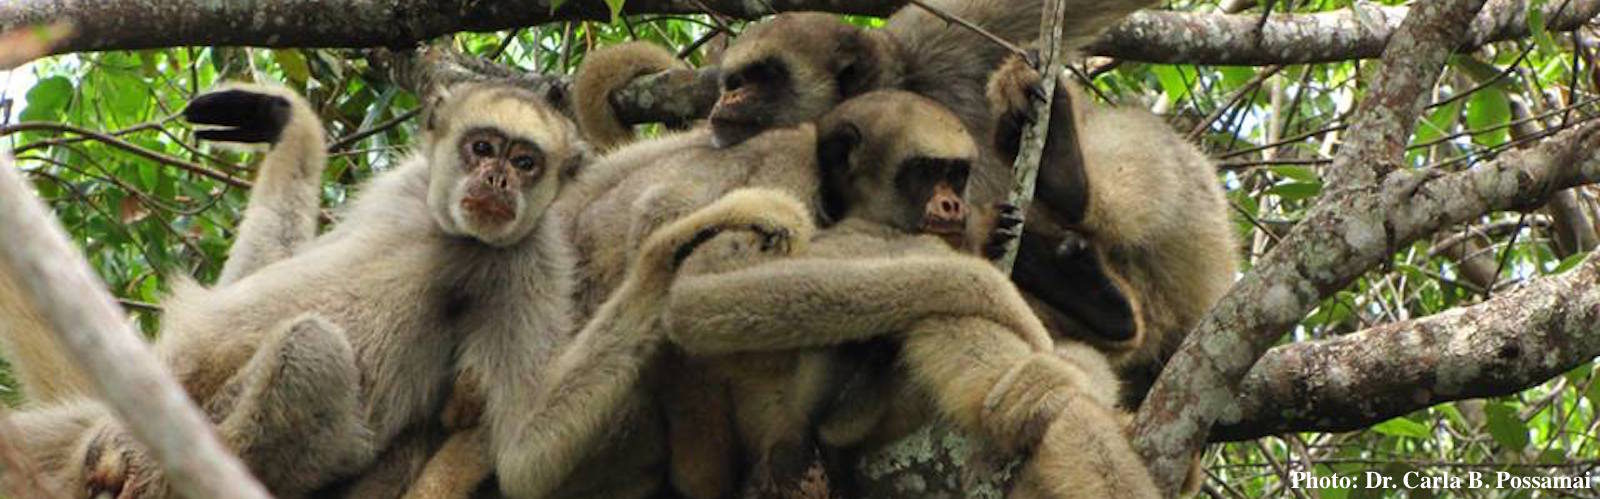 A group of northern muriquis hugging